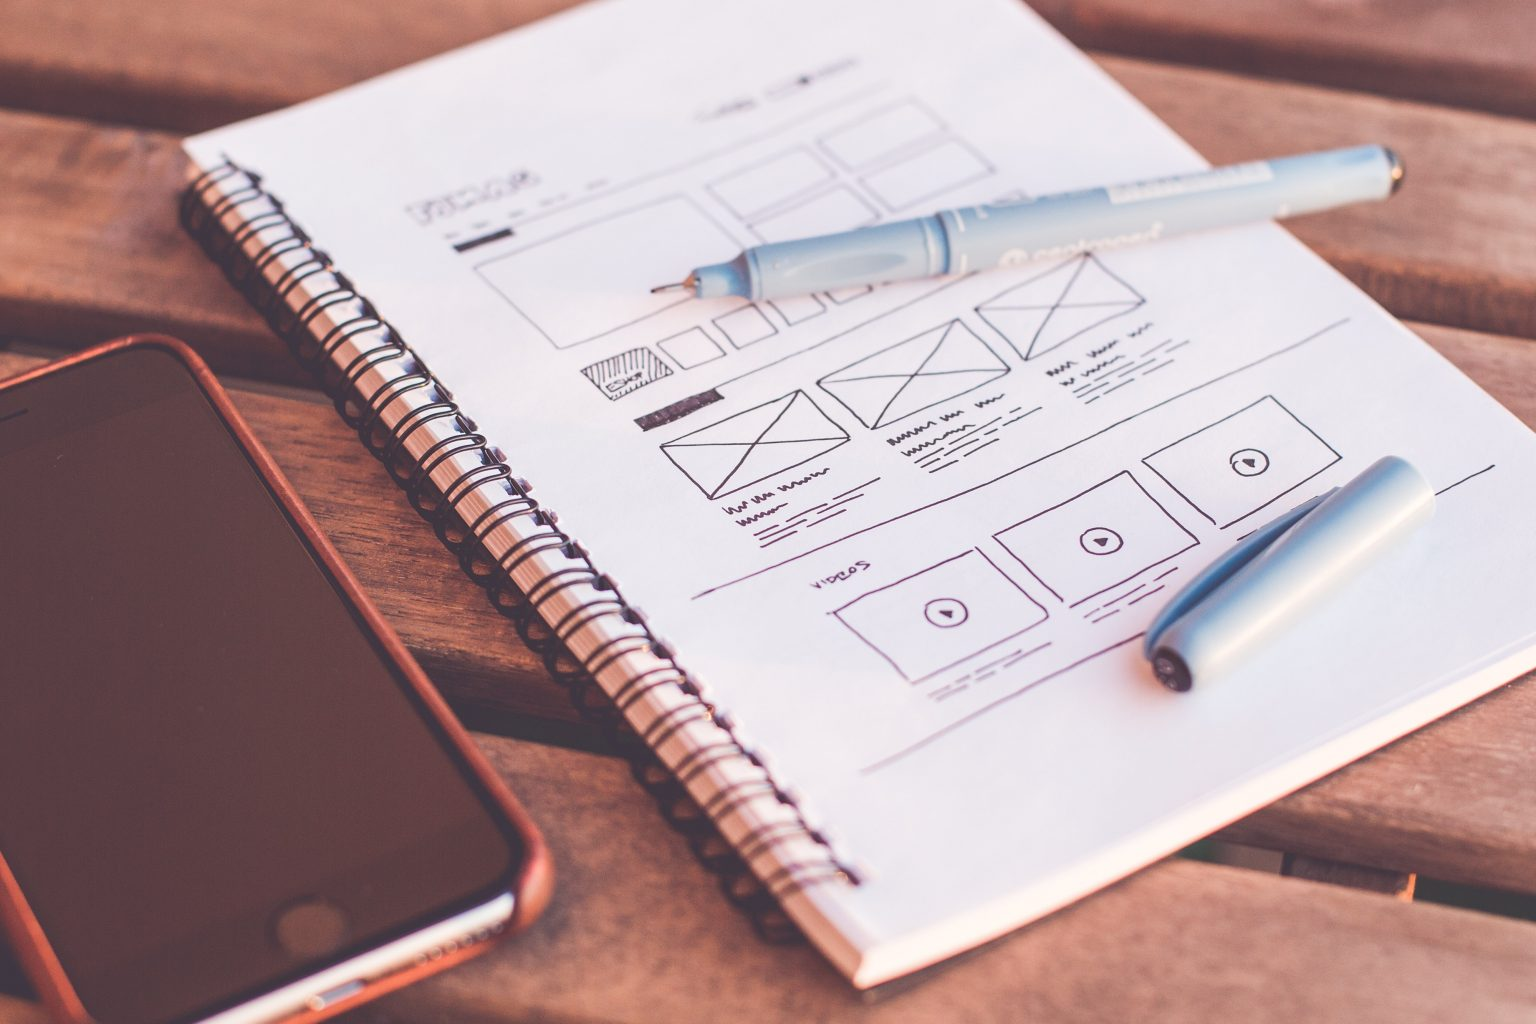 Build a Mobile App: Pt.2 Wireframing